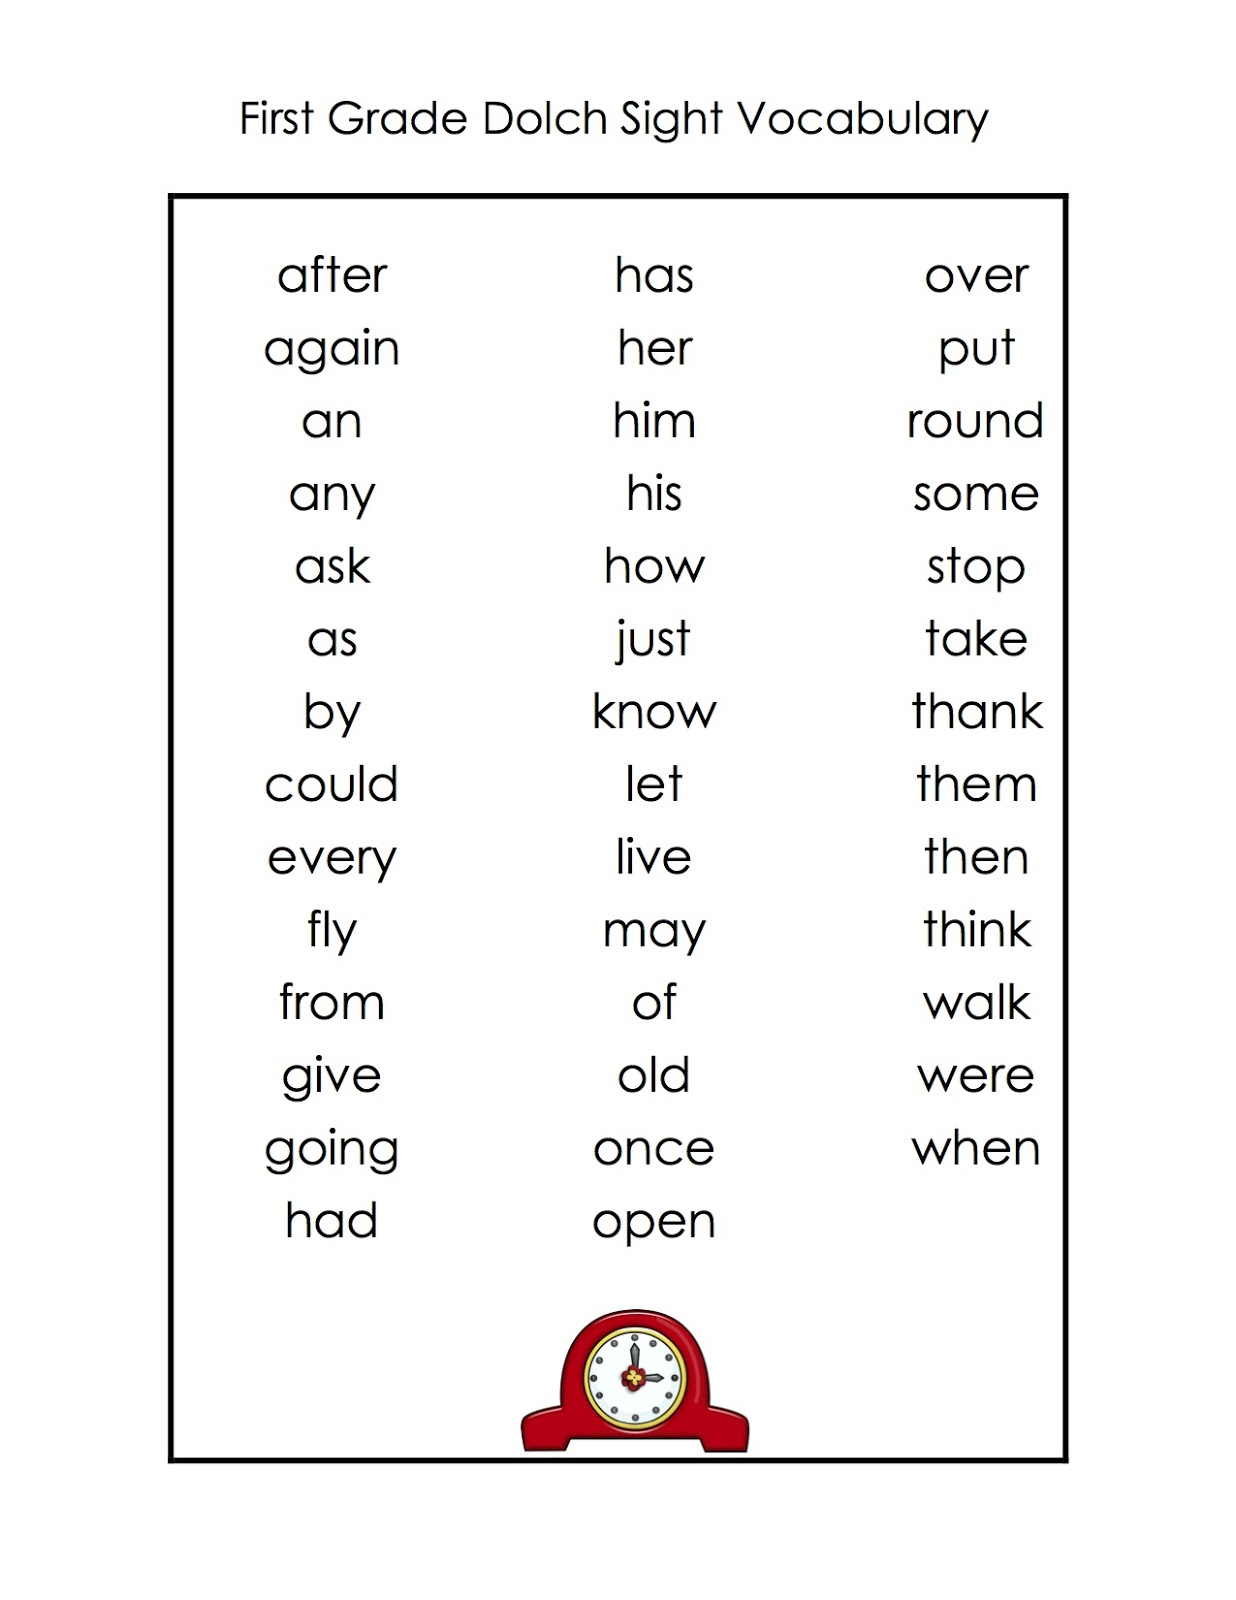 medium resolution of Cloze Passages Worksheets 4th Grade   Printable Worksheets and Activities  for Teachers